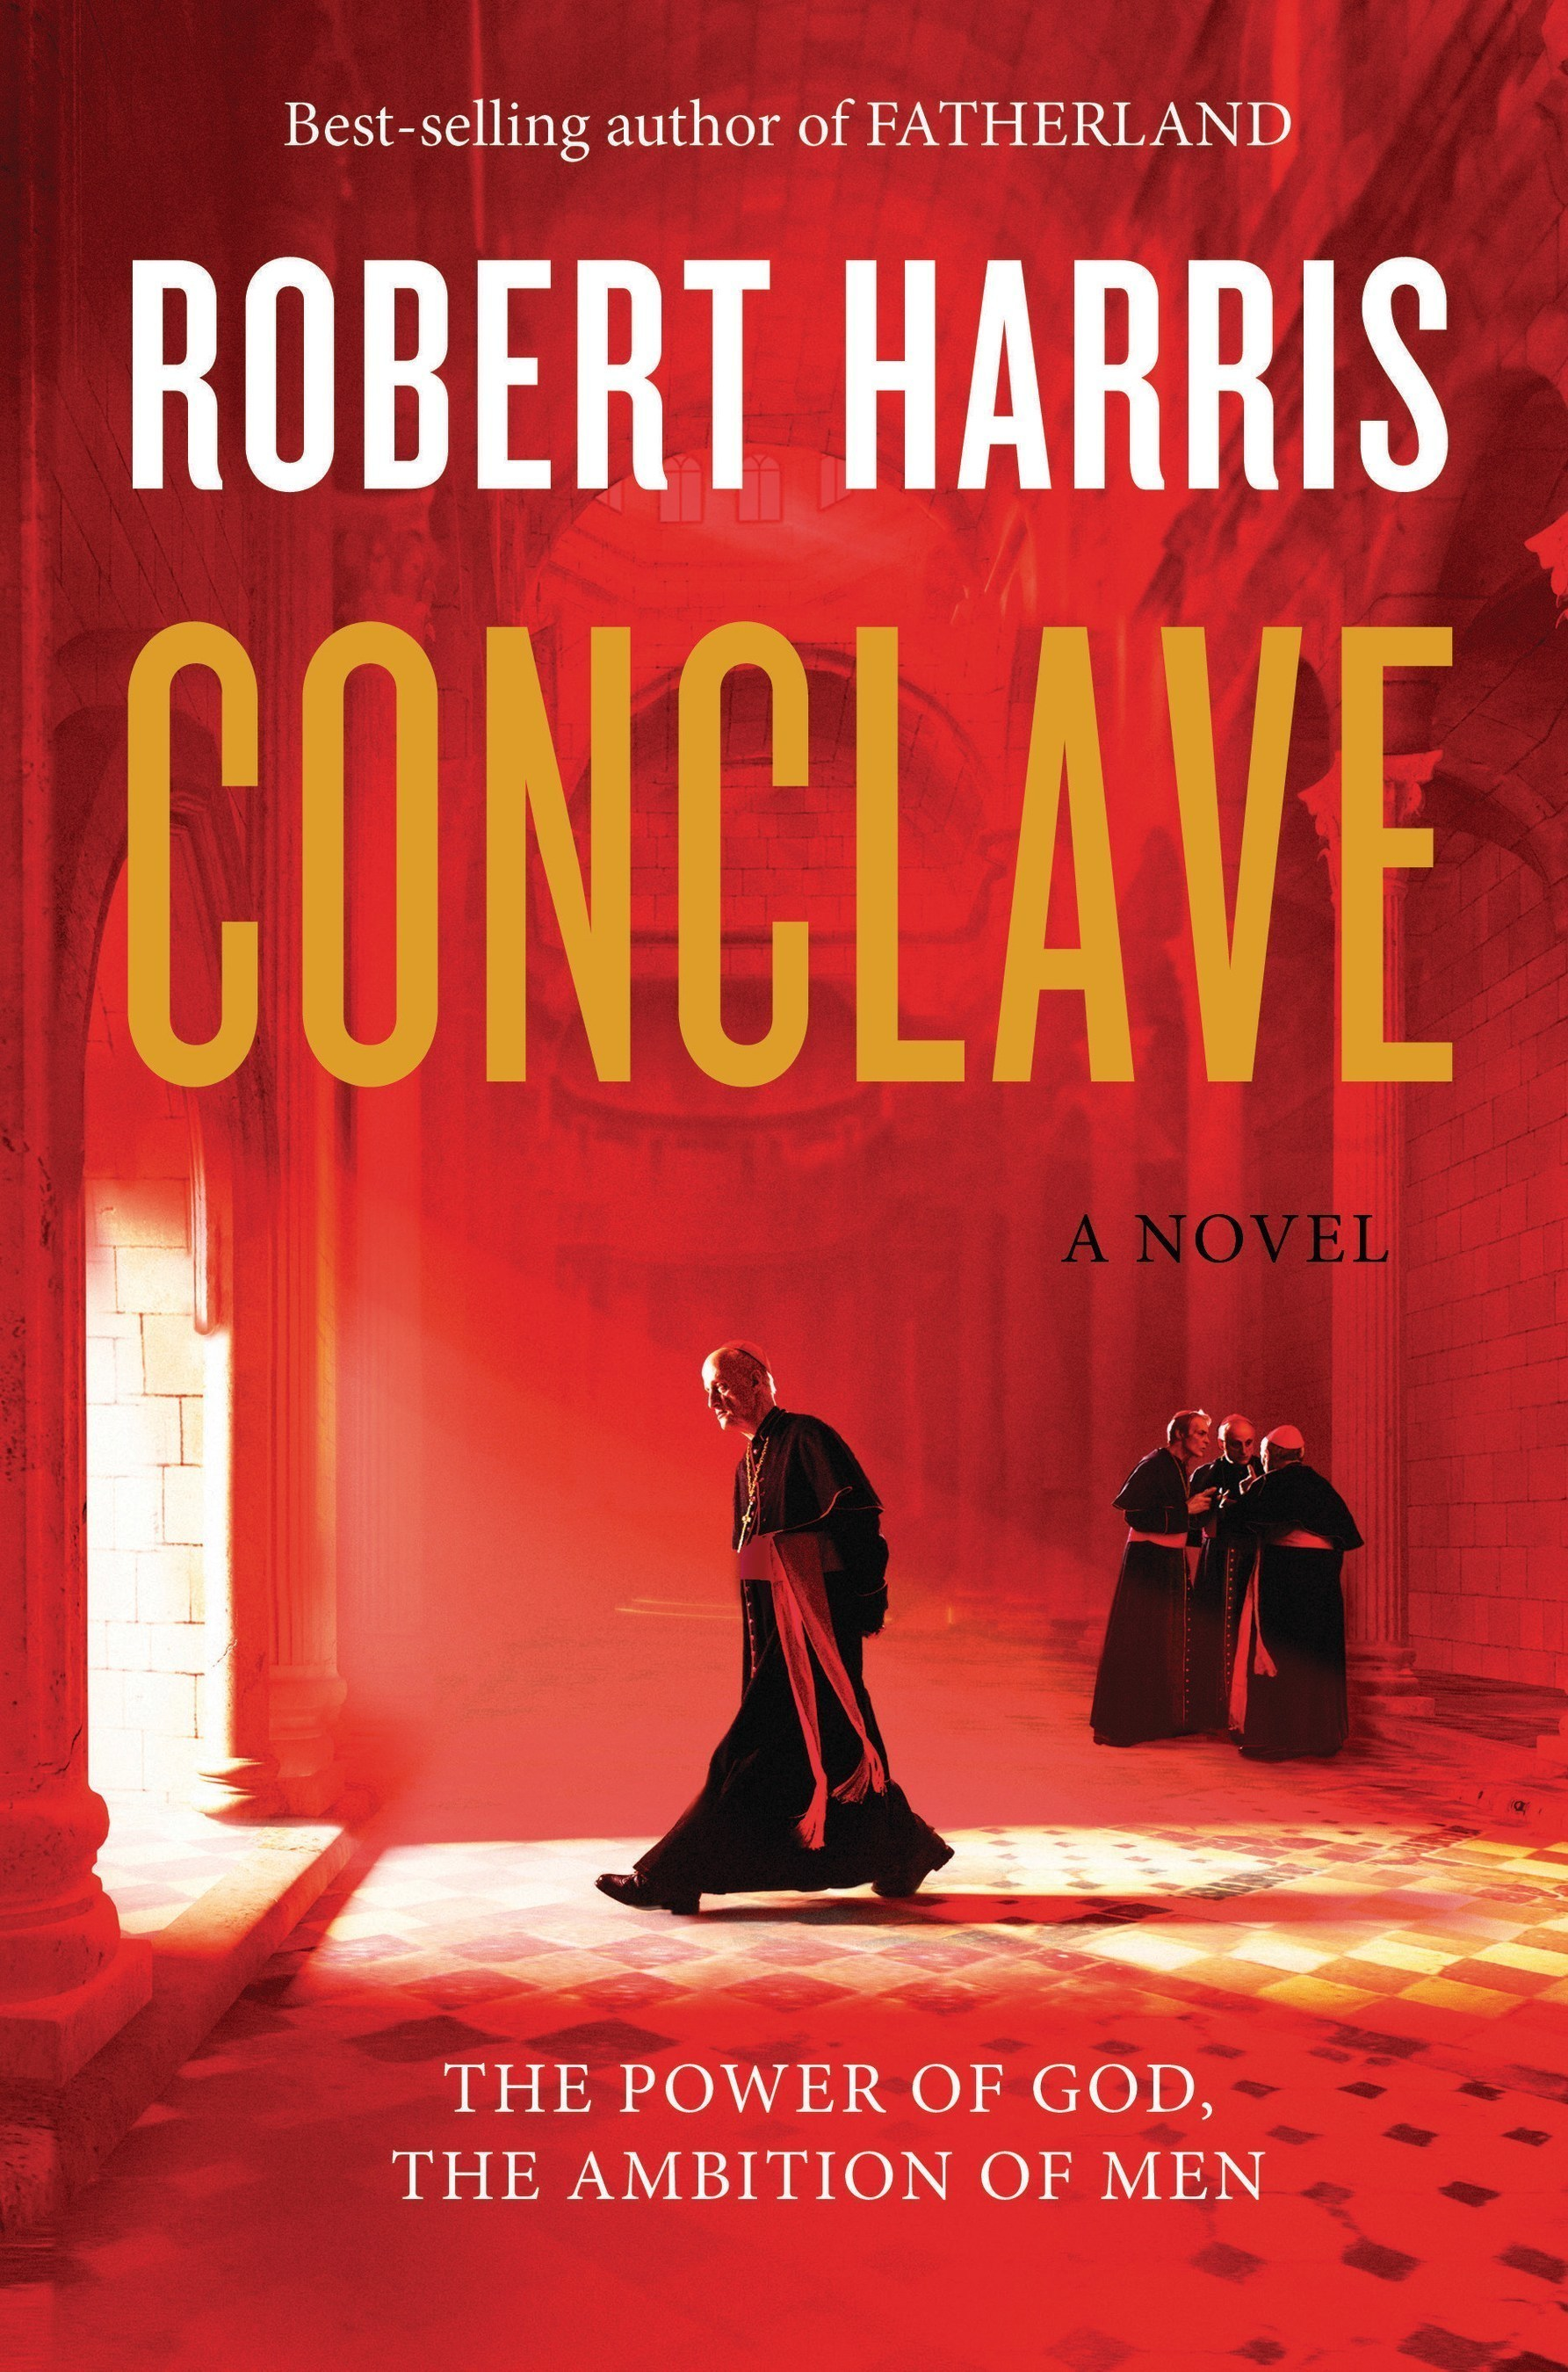 CONCLAVE book jacket (Alfred A. Knopf)